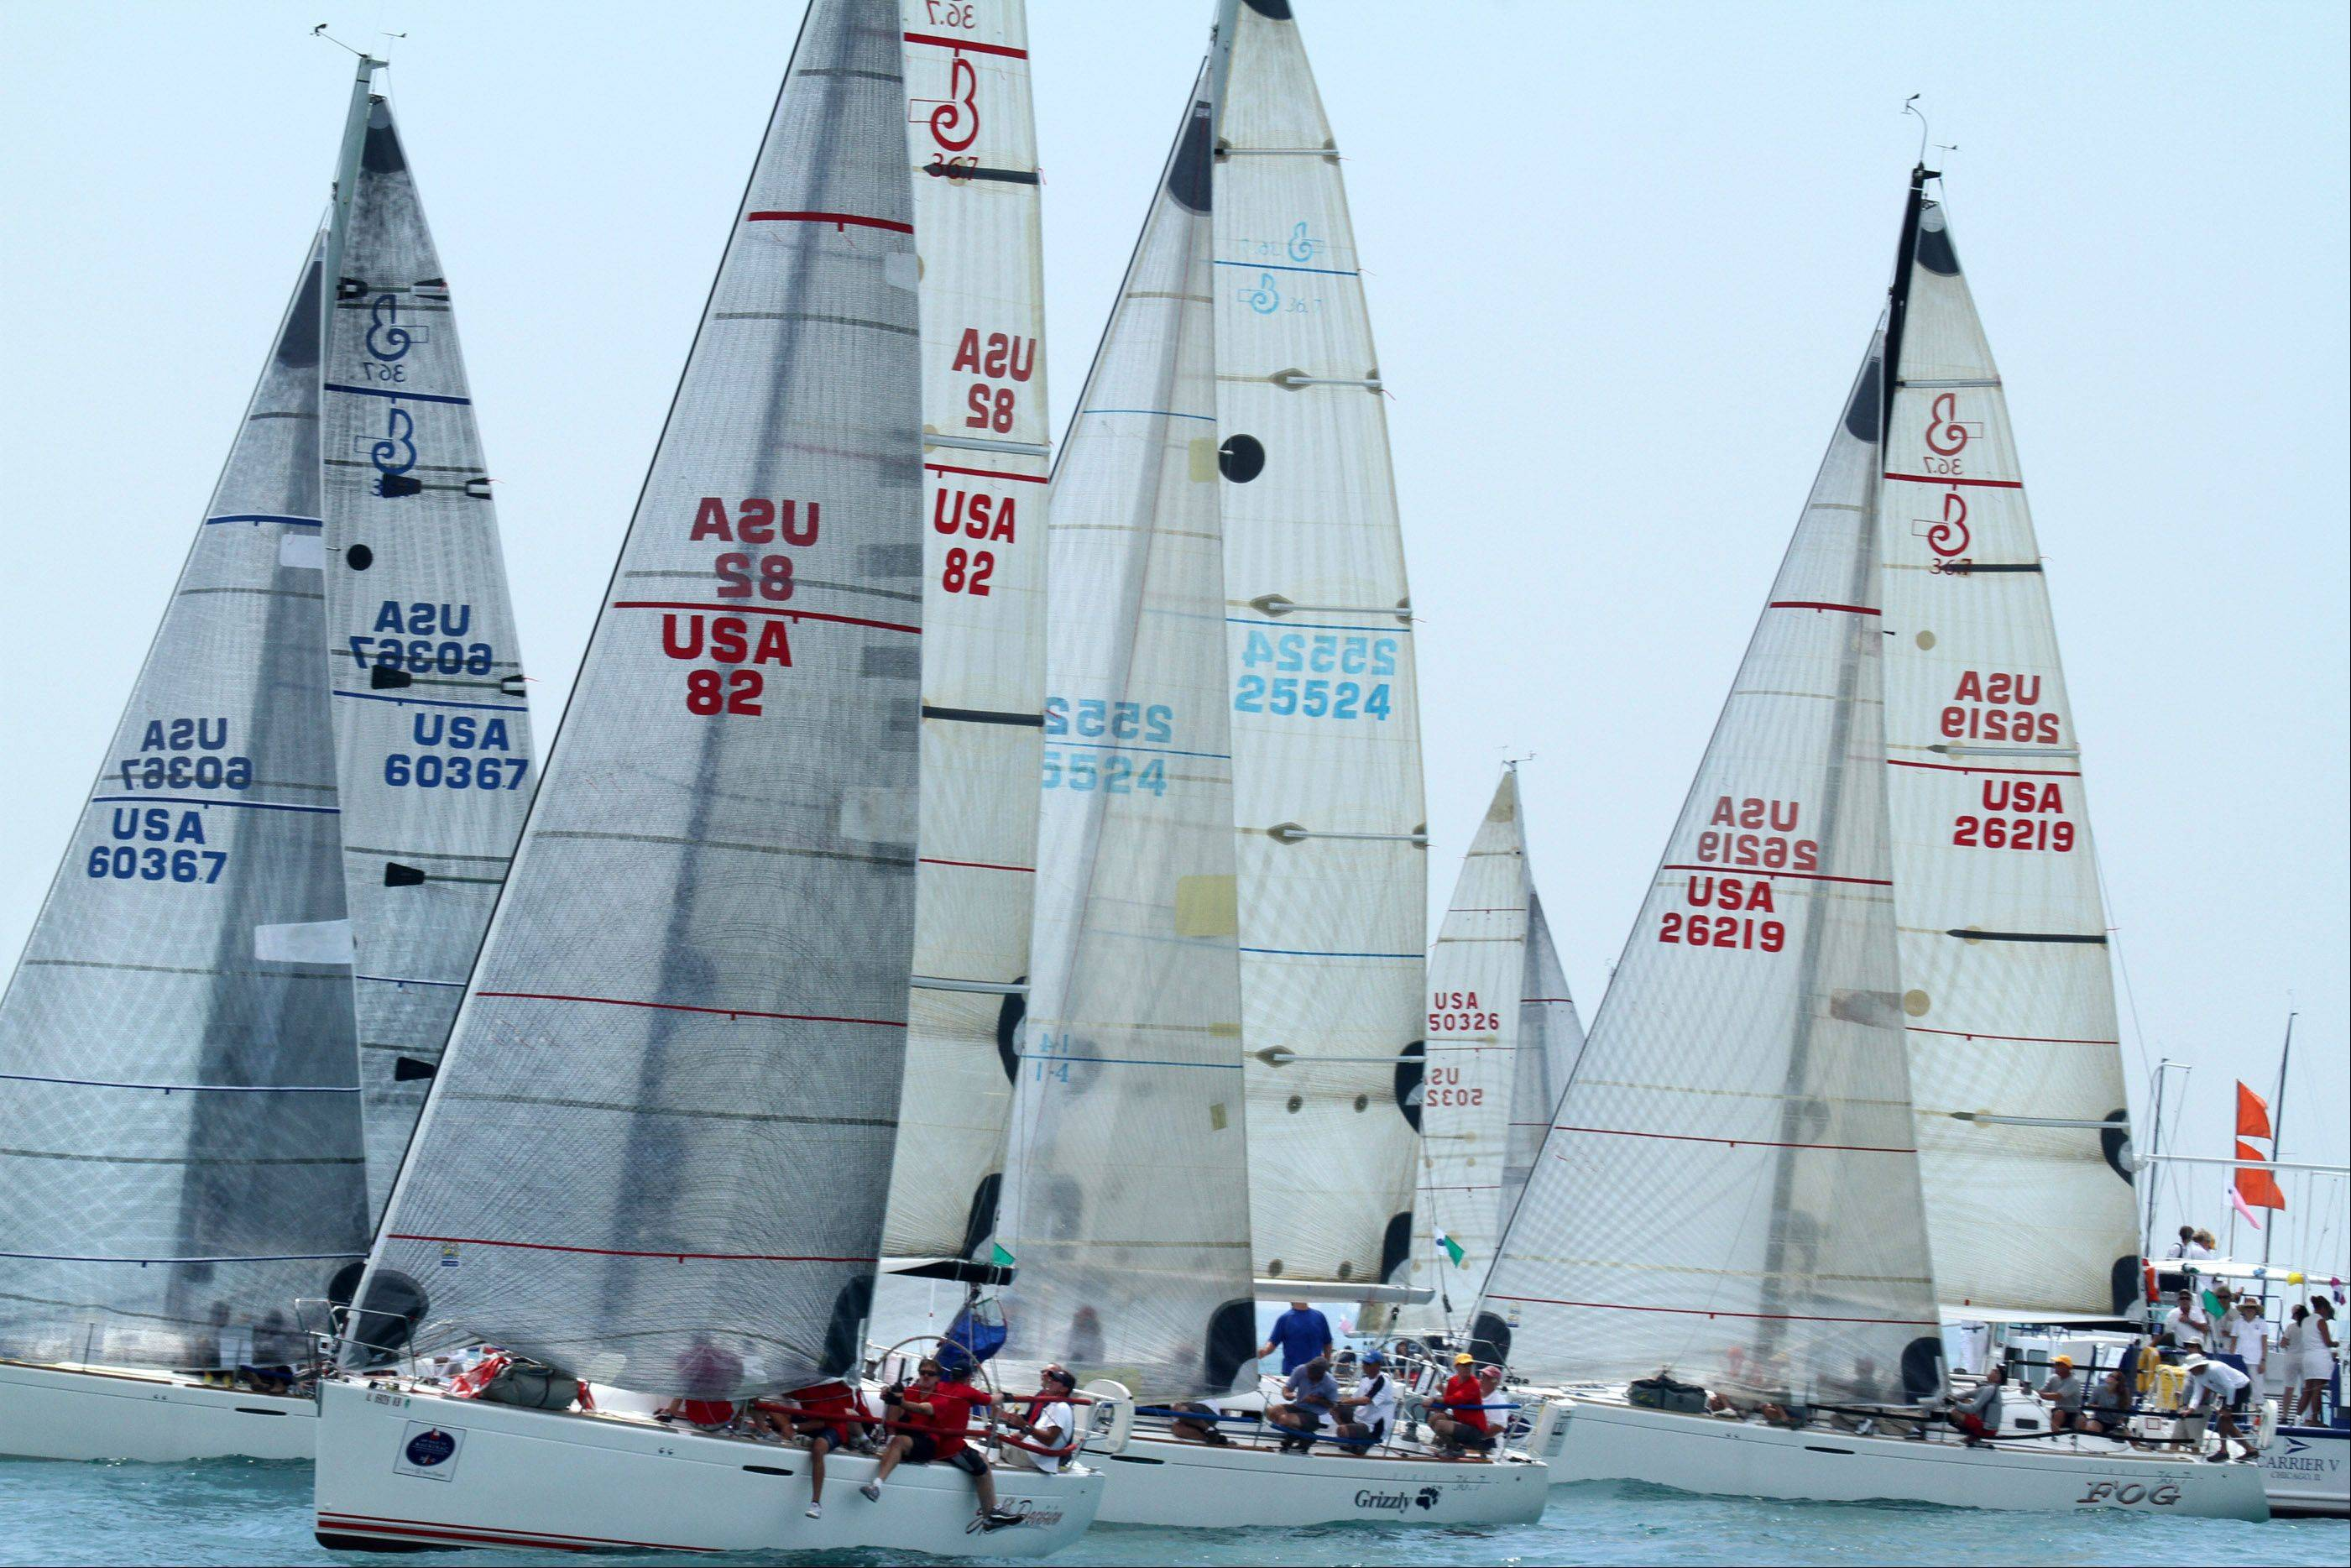 With little to wind sailboats, including Split Decision, second from left, USA 82, owned by Mark Norris of Chicago, with Chicago Yacht Club, were bunched up at the start of the 104th Chicago Yacht Club Race to Mackinac on Lake Michigan of Chicago on Saturday, July 21.